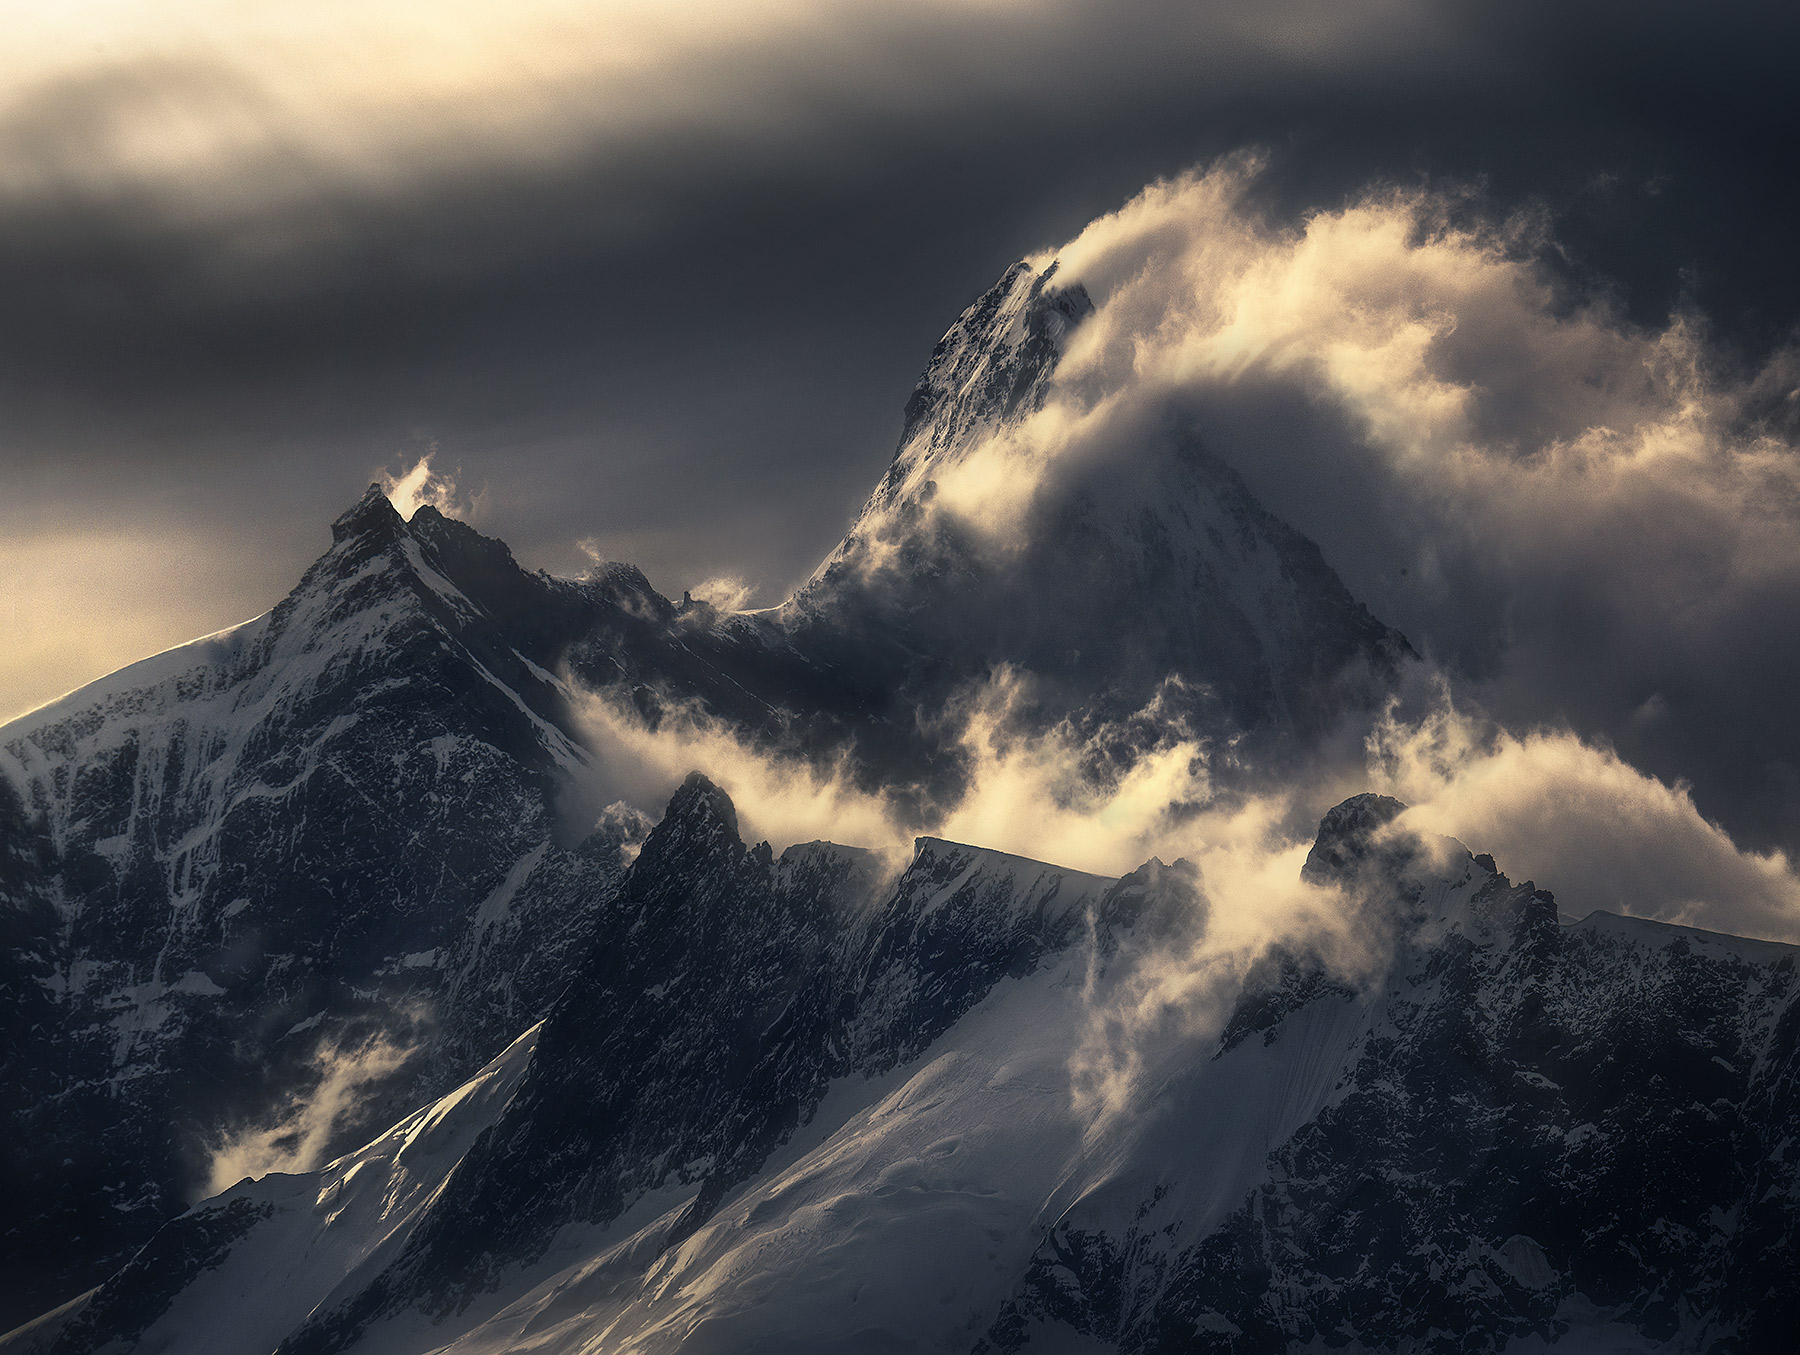 The great Mount Aspiring rips through the clouds amidst high winds one cold summer day.